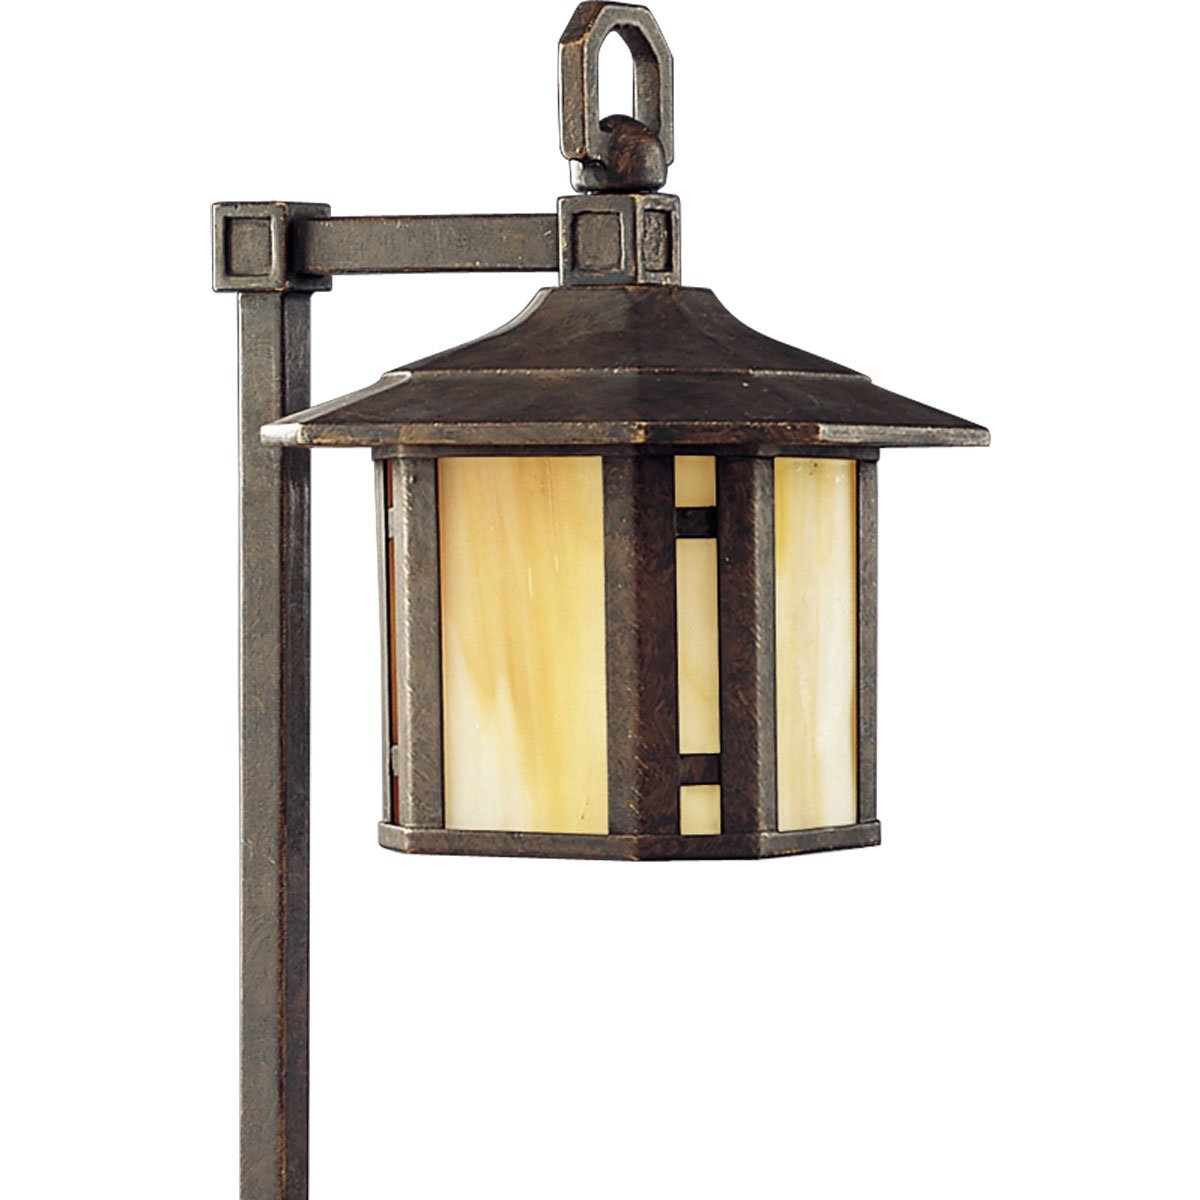 Progress Lighting P5272-46 1-Light Path Light with Honey Art Glass and Mica Accent Panels, Weathered Bronze